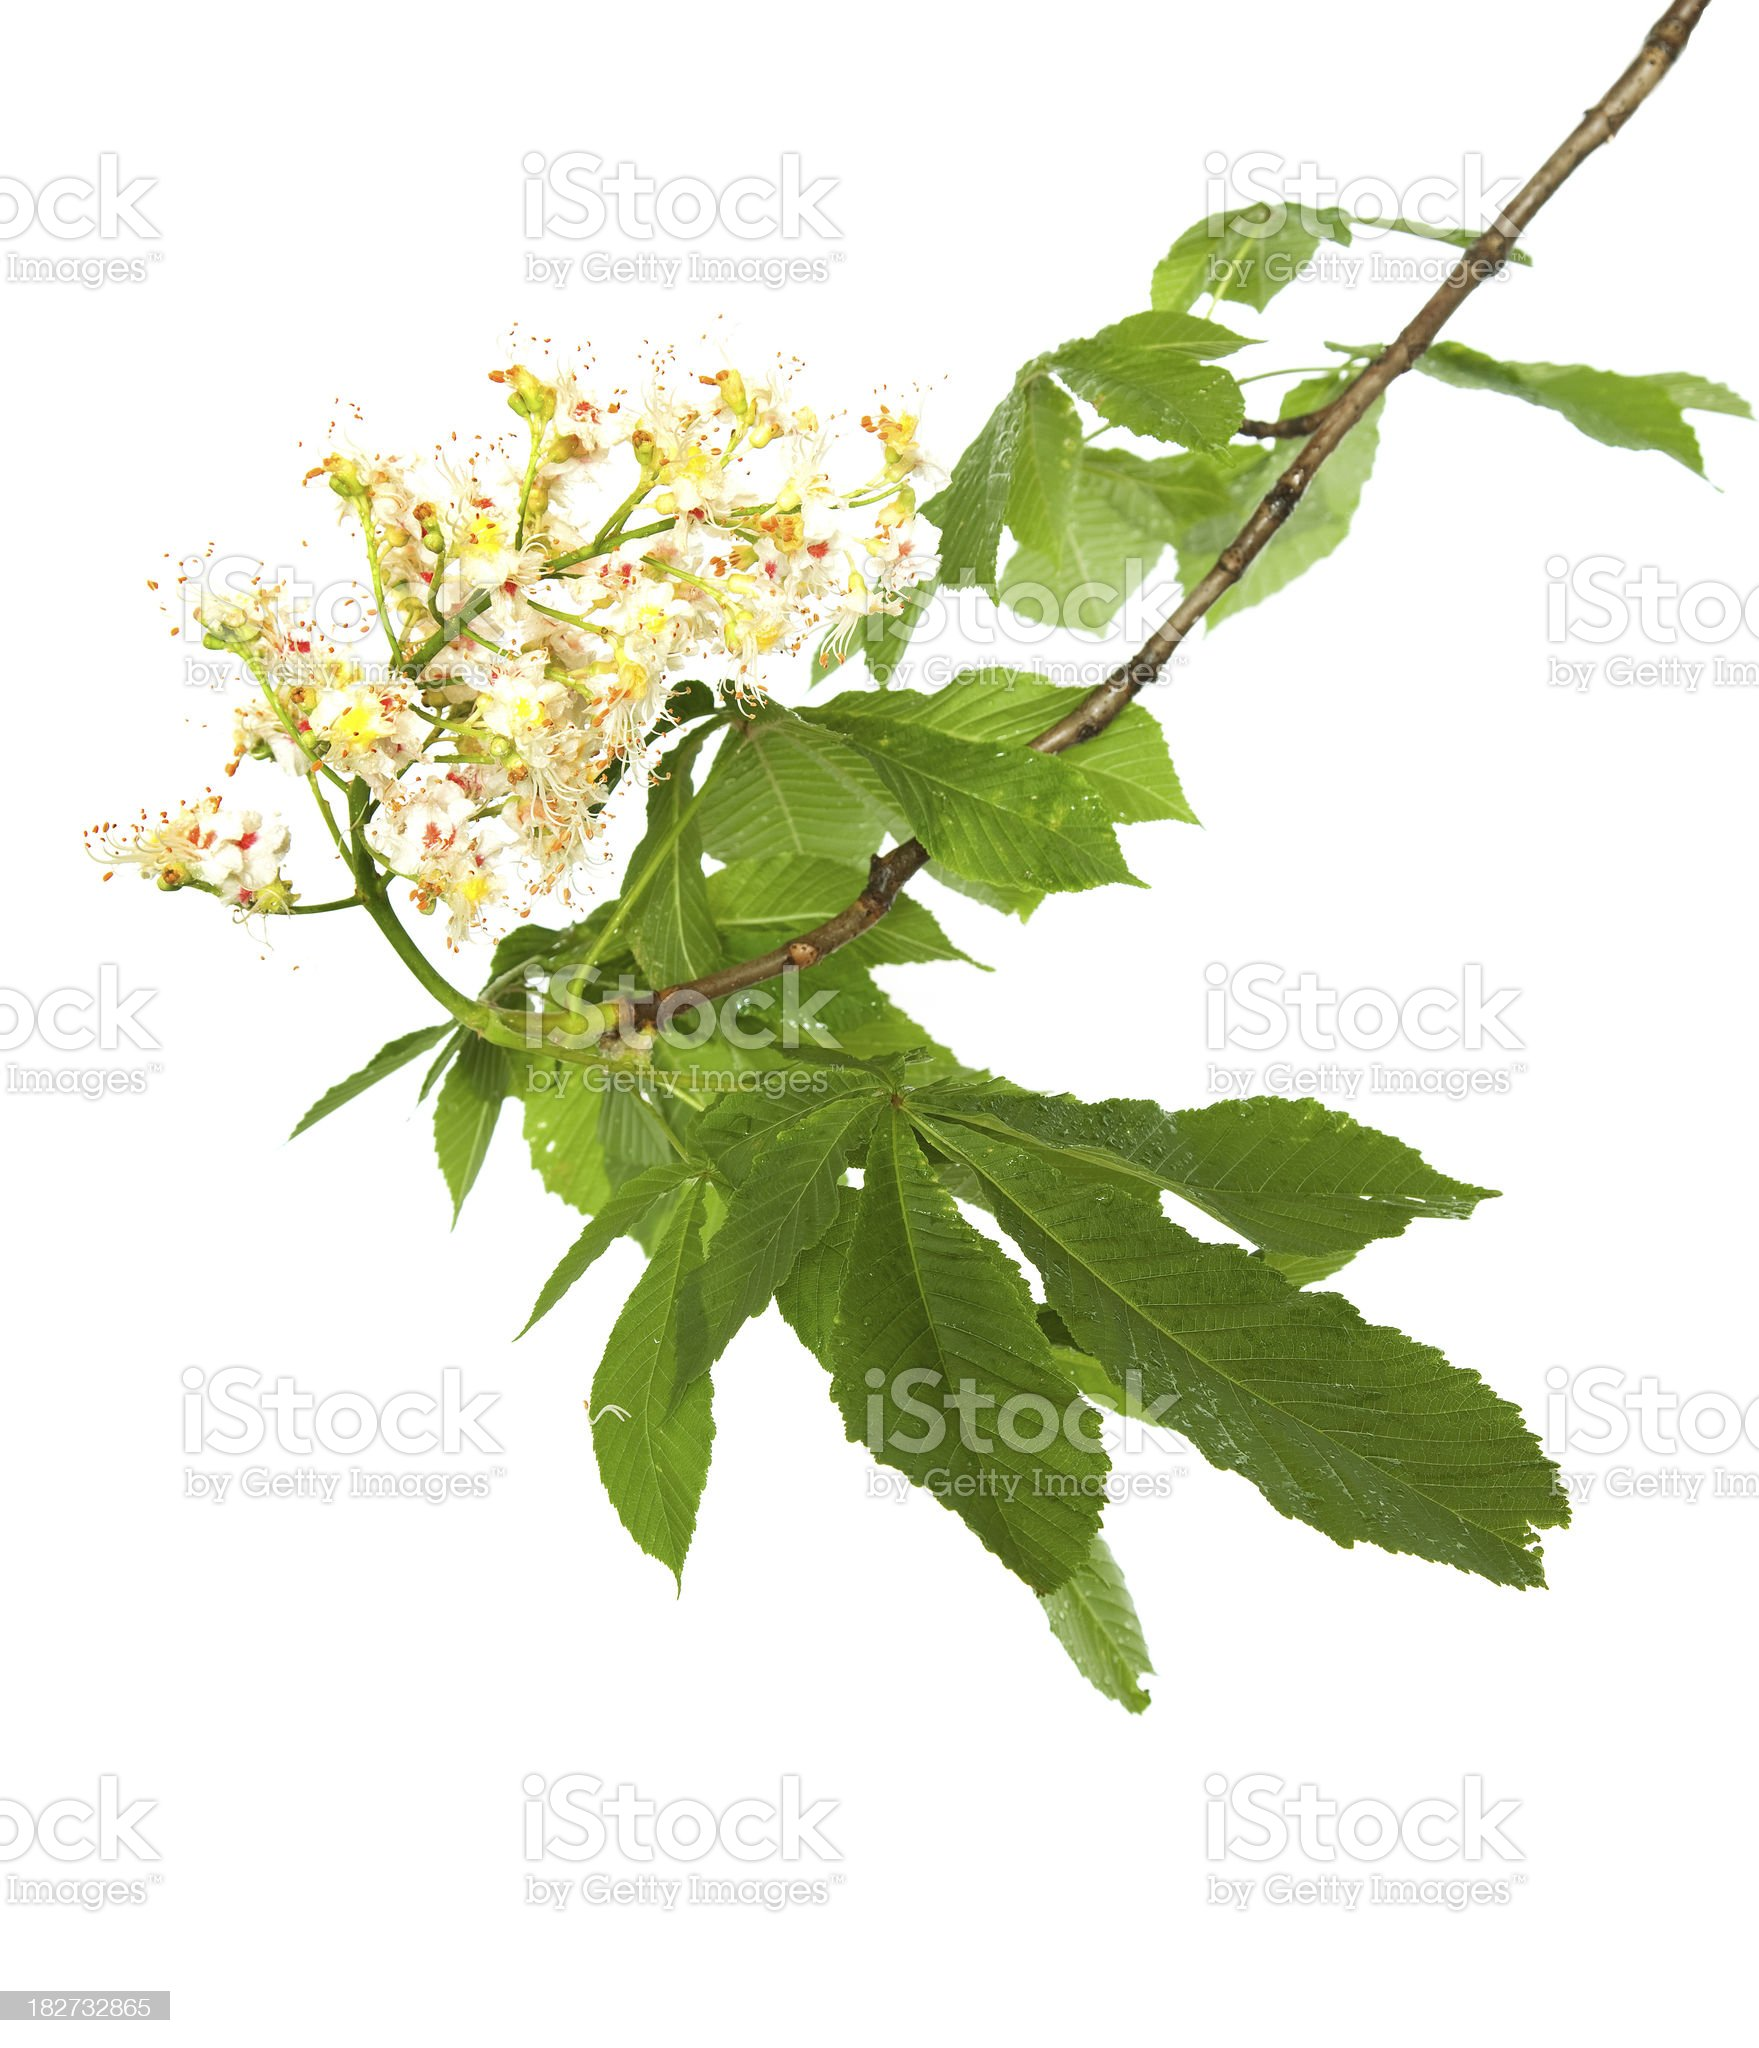 Branch of chestnut. royalty-free stock photo